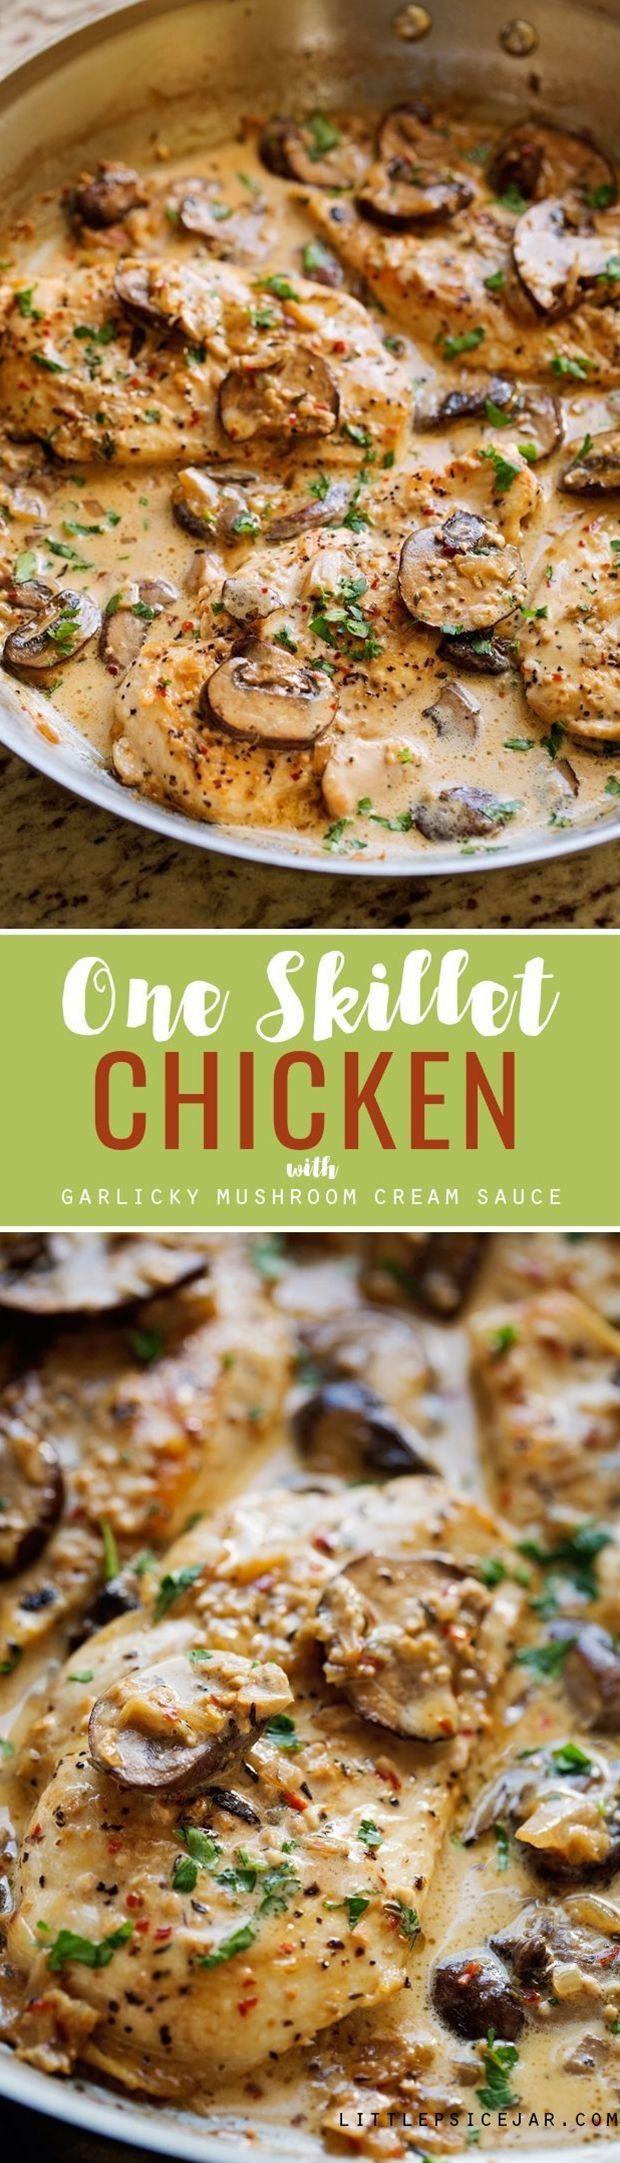 Ready in 30 minutes and perfect over a bed of pasta.\n\n INGREDIENTS\n 4 boneless skinless chicken breasts (or thighs)\n salt and pepper\n 1 cup chicken broth\n 1 tablespoon minced garlic\n ½ teaspoon red pepper flakes\n ½ teaspoon dried thyme\n 2 tablespoons olive oil\n 8 ounces baby bella (cremini) mushrooms, sliced\n ⅓ cup finely diced shallots (or red onions)\n 2 tablespoons butter\n ¼ cup heavy cream\n 2 tablespoons chopped parsley (or basil)